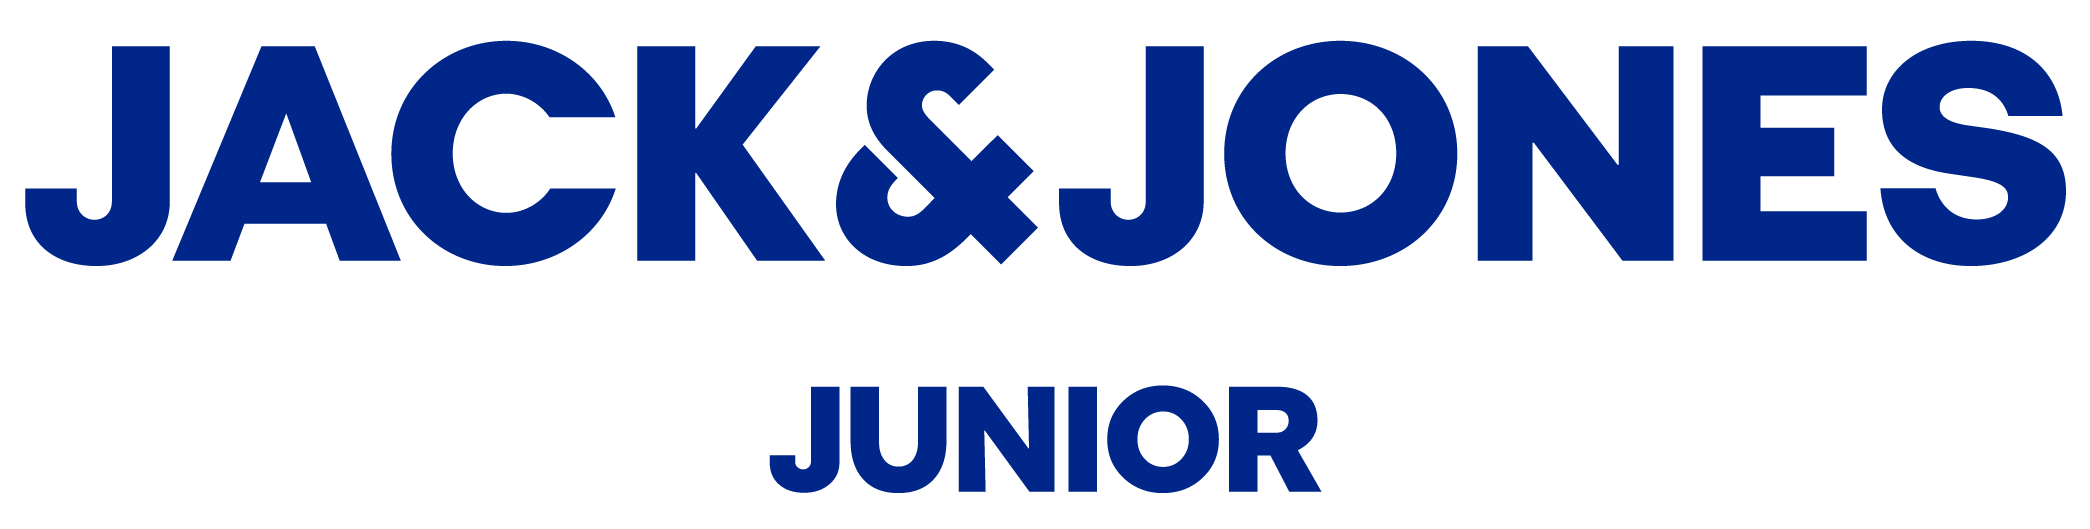 Jack & Jones Junior logo